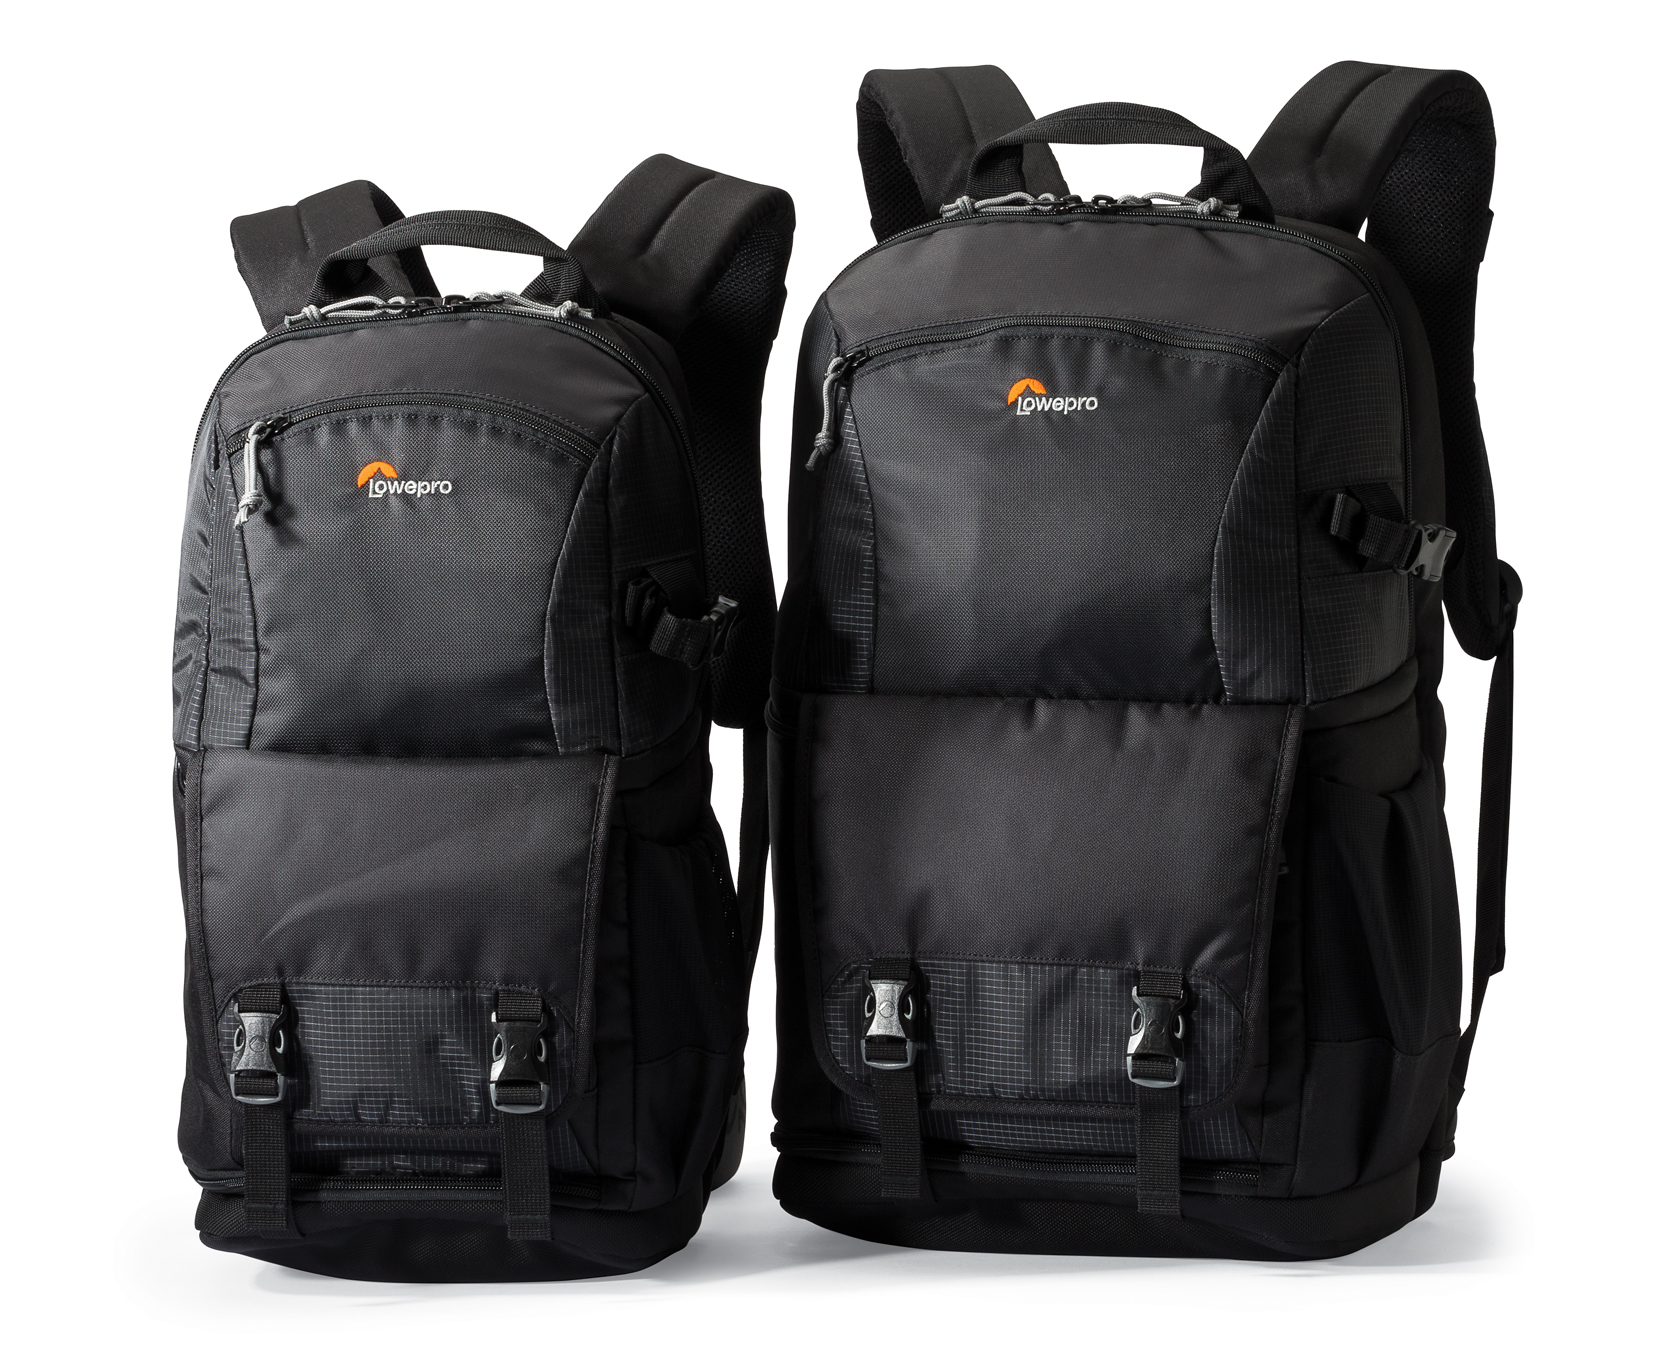 Lowepro Has Upgraded Their Popular Fastpack Bags